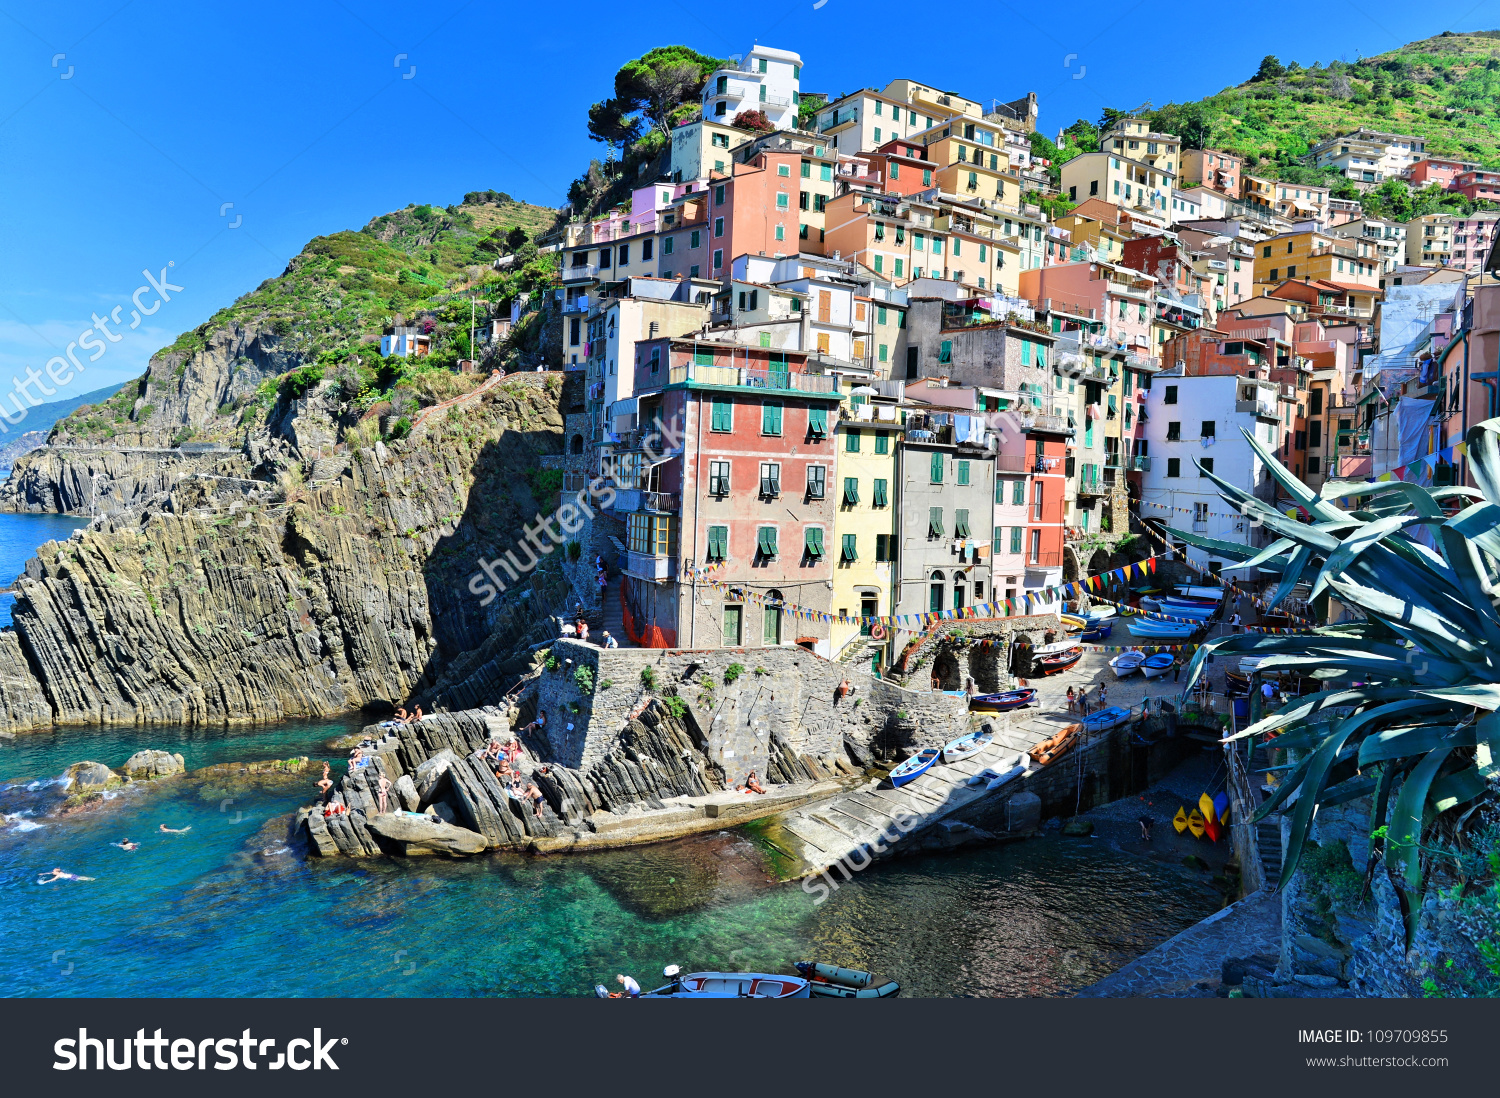 Rio Maggiore View From Above, Cinque Terre, Italian Riviera Stock.